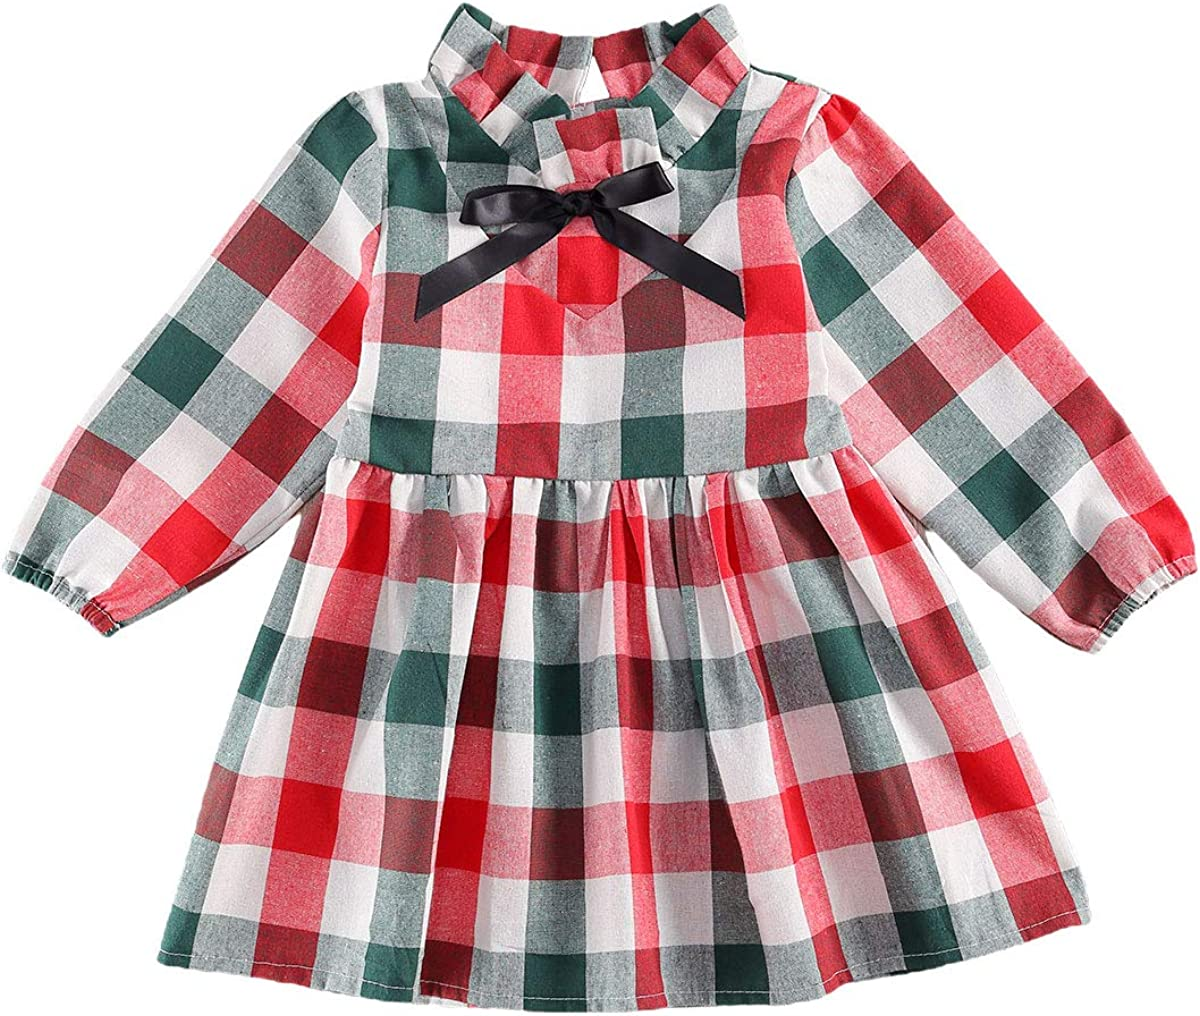 Toddler Kids Baby Girls Plaid Outfit Long Sleeve Plain Overall Dresses with  Headband Infant Casual Fall Clothes